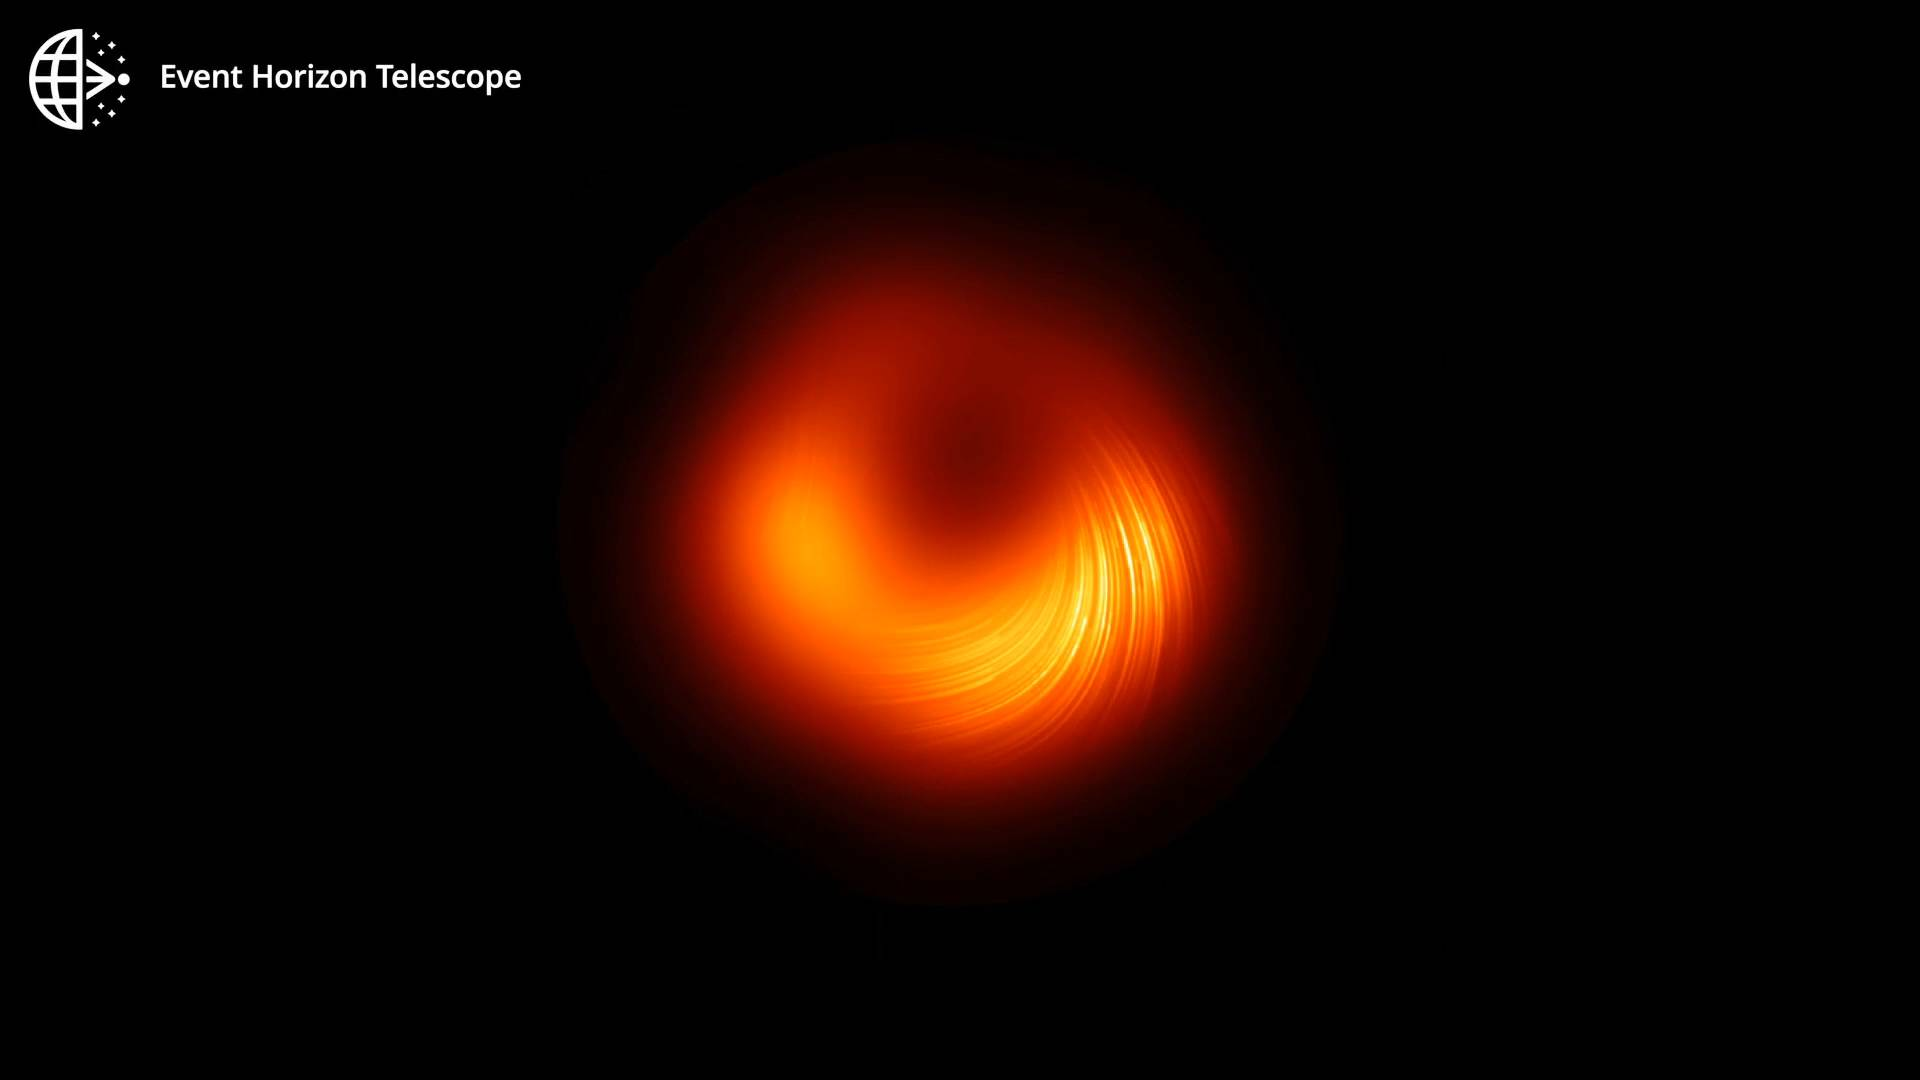 GLOBALink | New details of massive black hole emerge